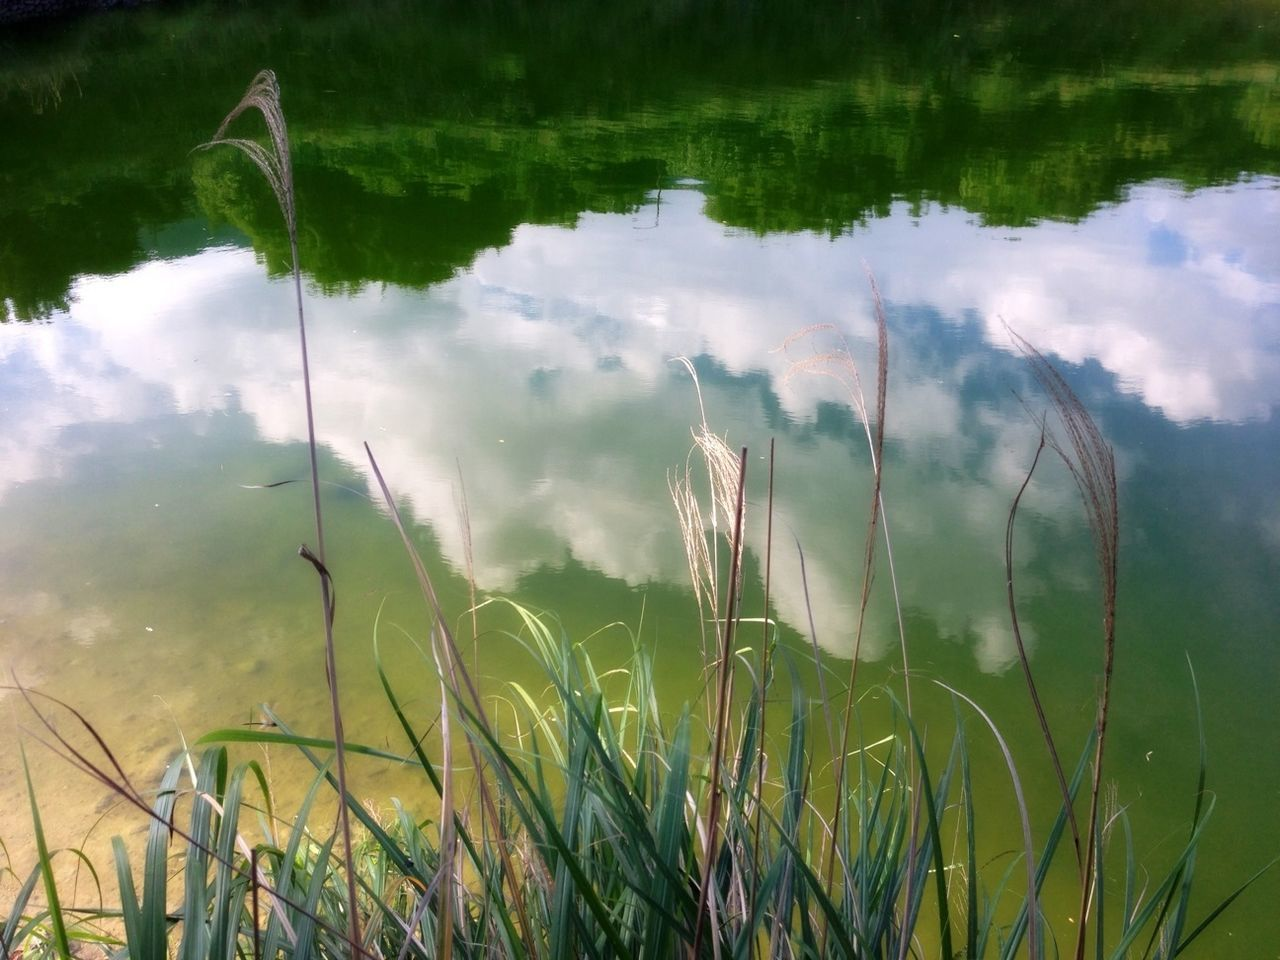 growth, grass, nature, plant, green color, field, reflection, water, no people, tranquil scene, outdoors, day, beauty in nature, tranquility, lake, scenics, sky, close-up